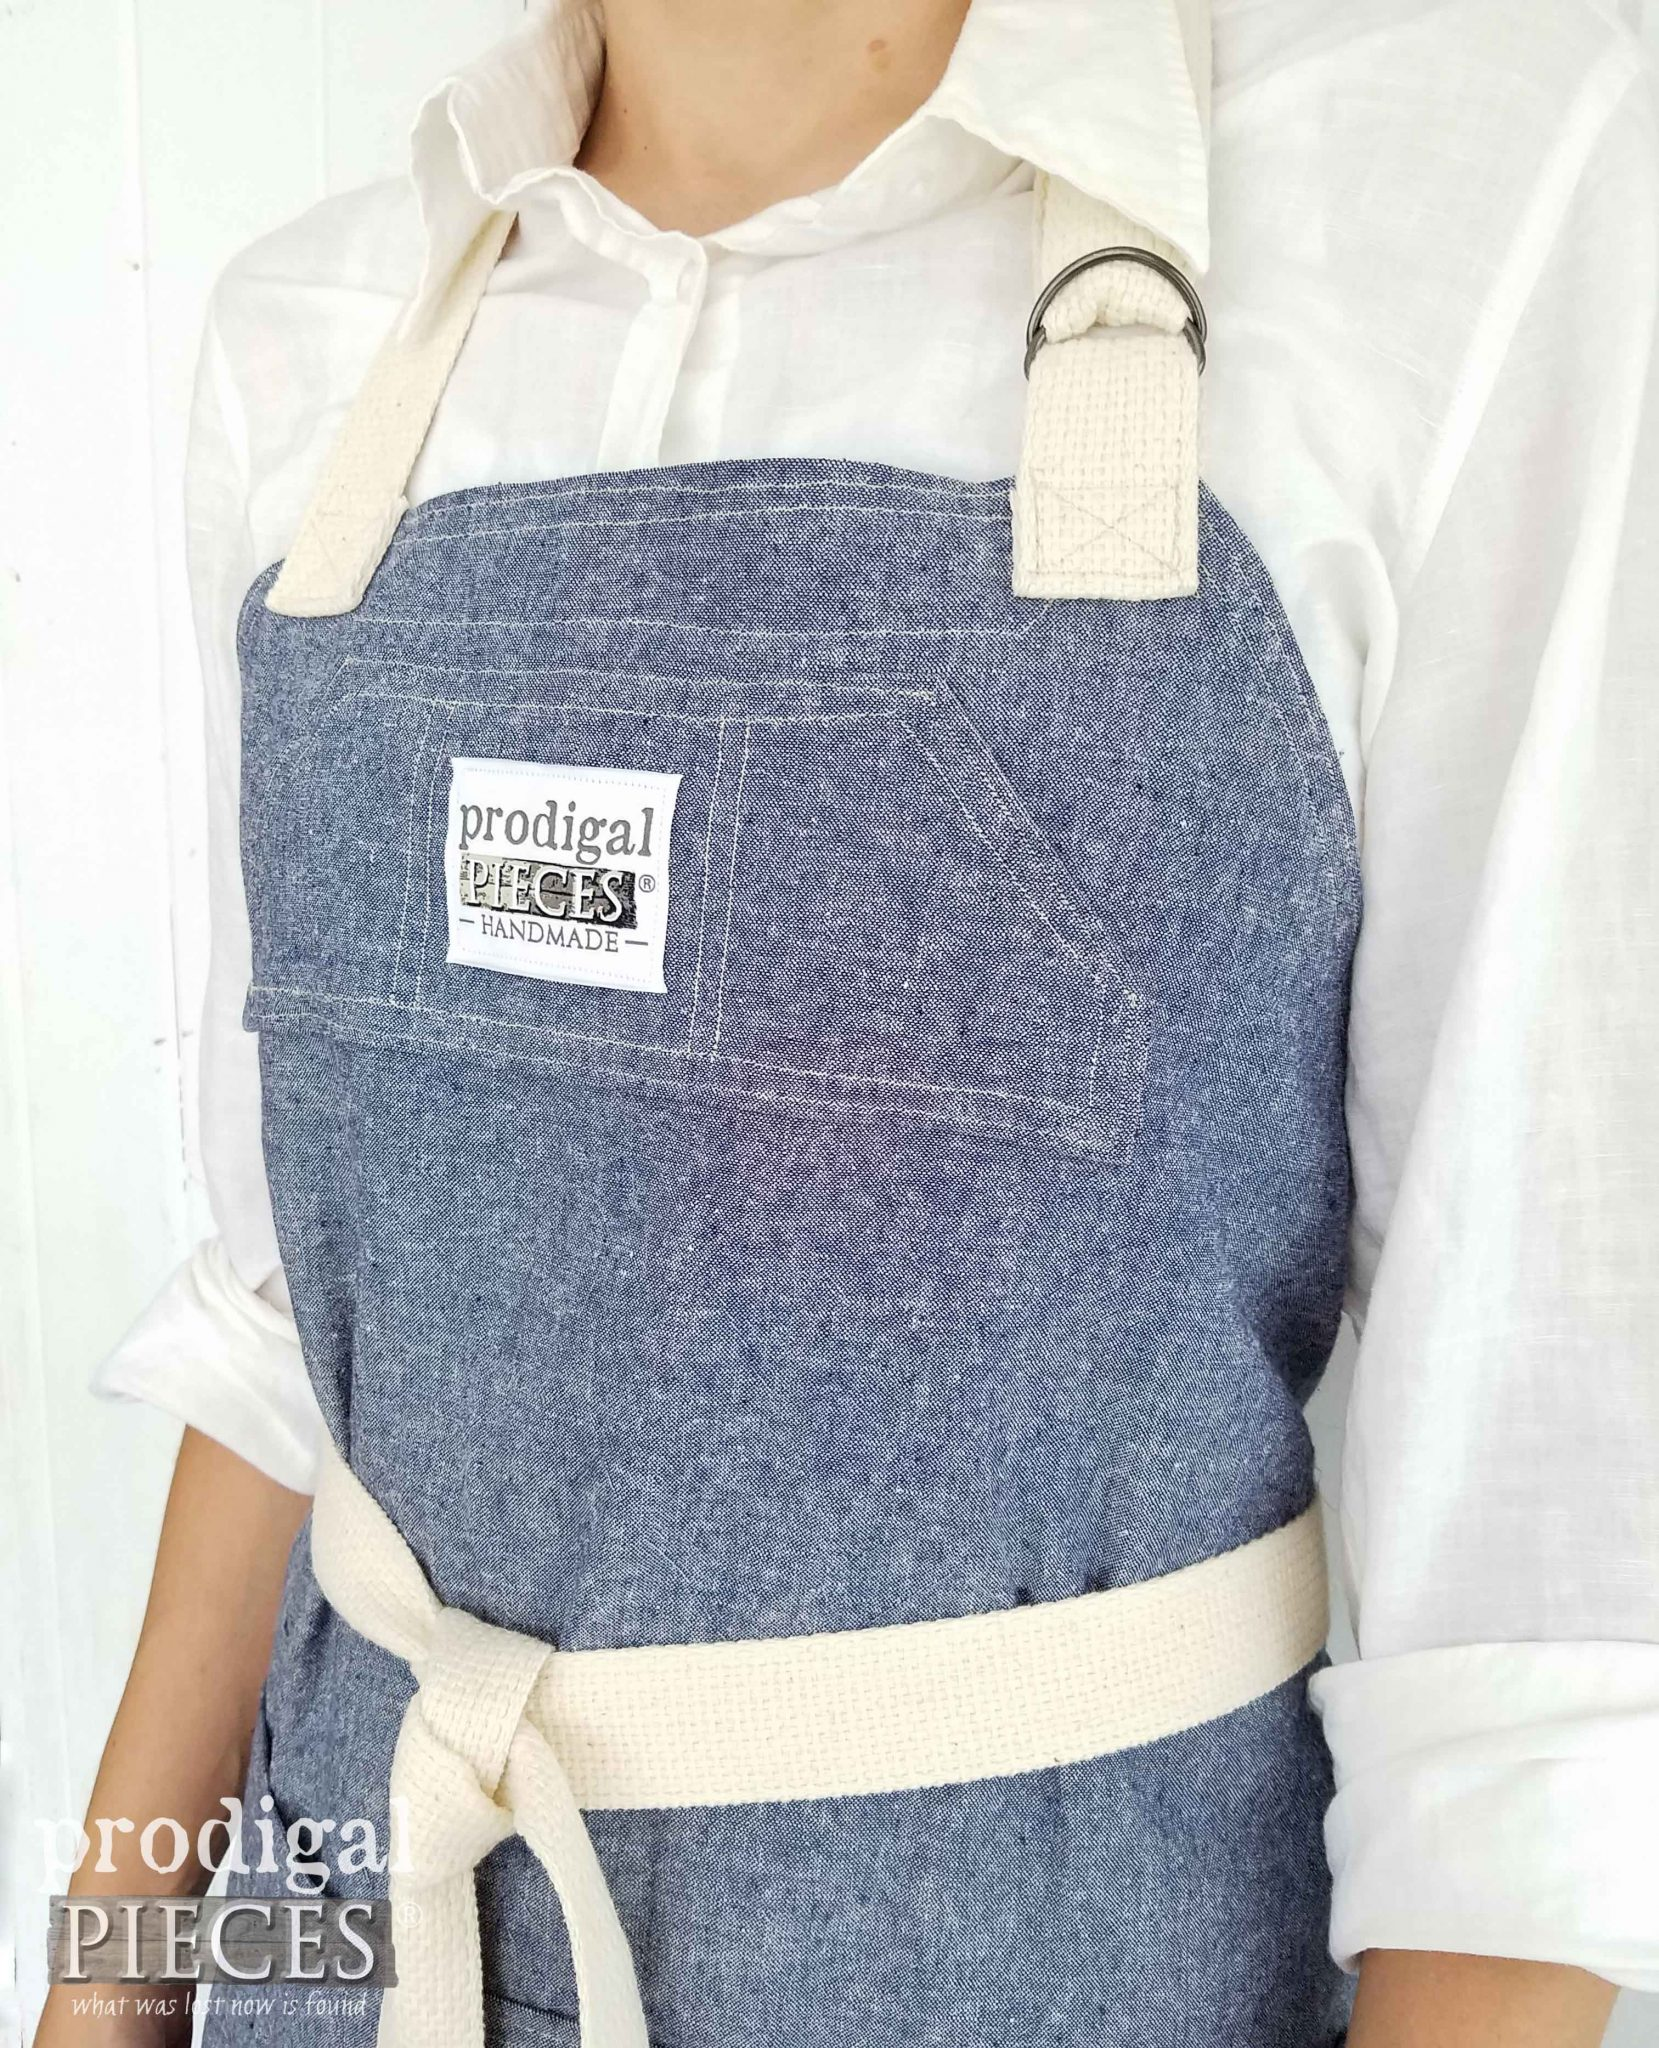 Linen Bib Apron with Pockets and Adjustable Neck Strap by Prodigal Pieces | prodigalpieces.com